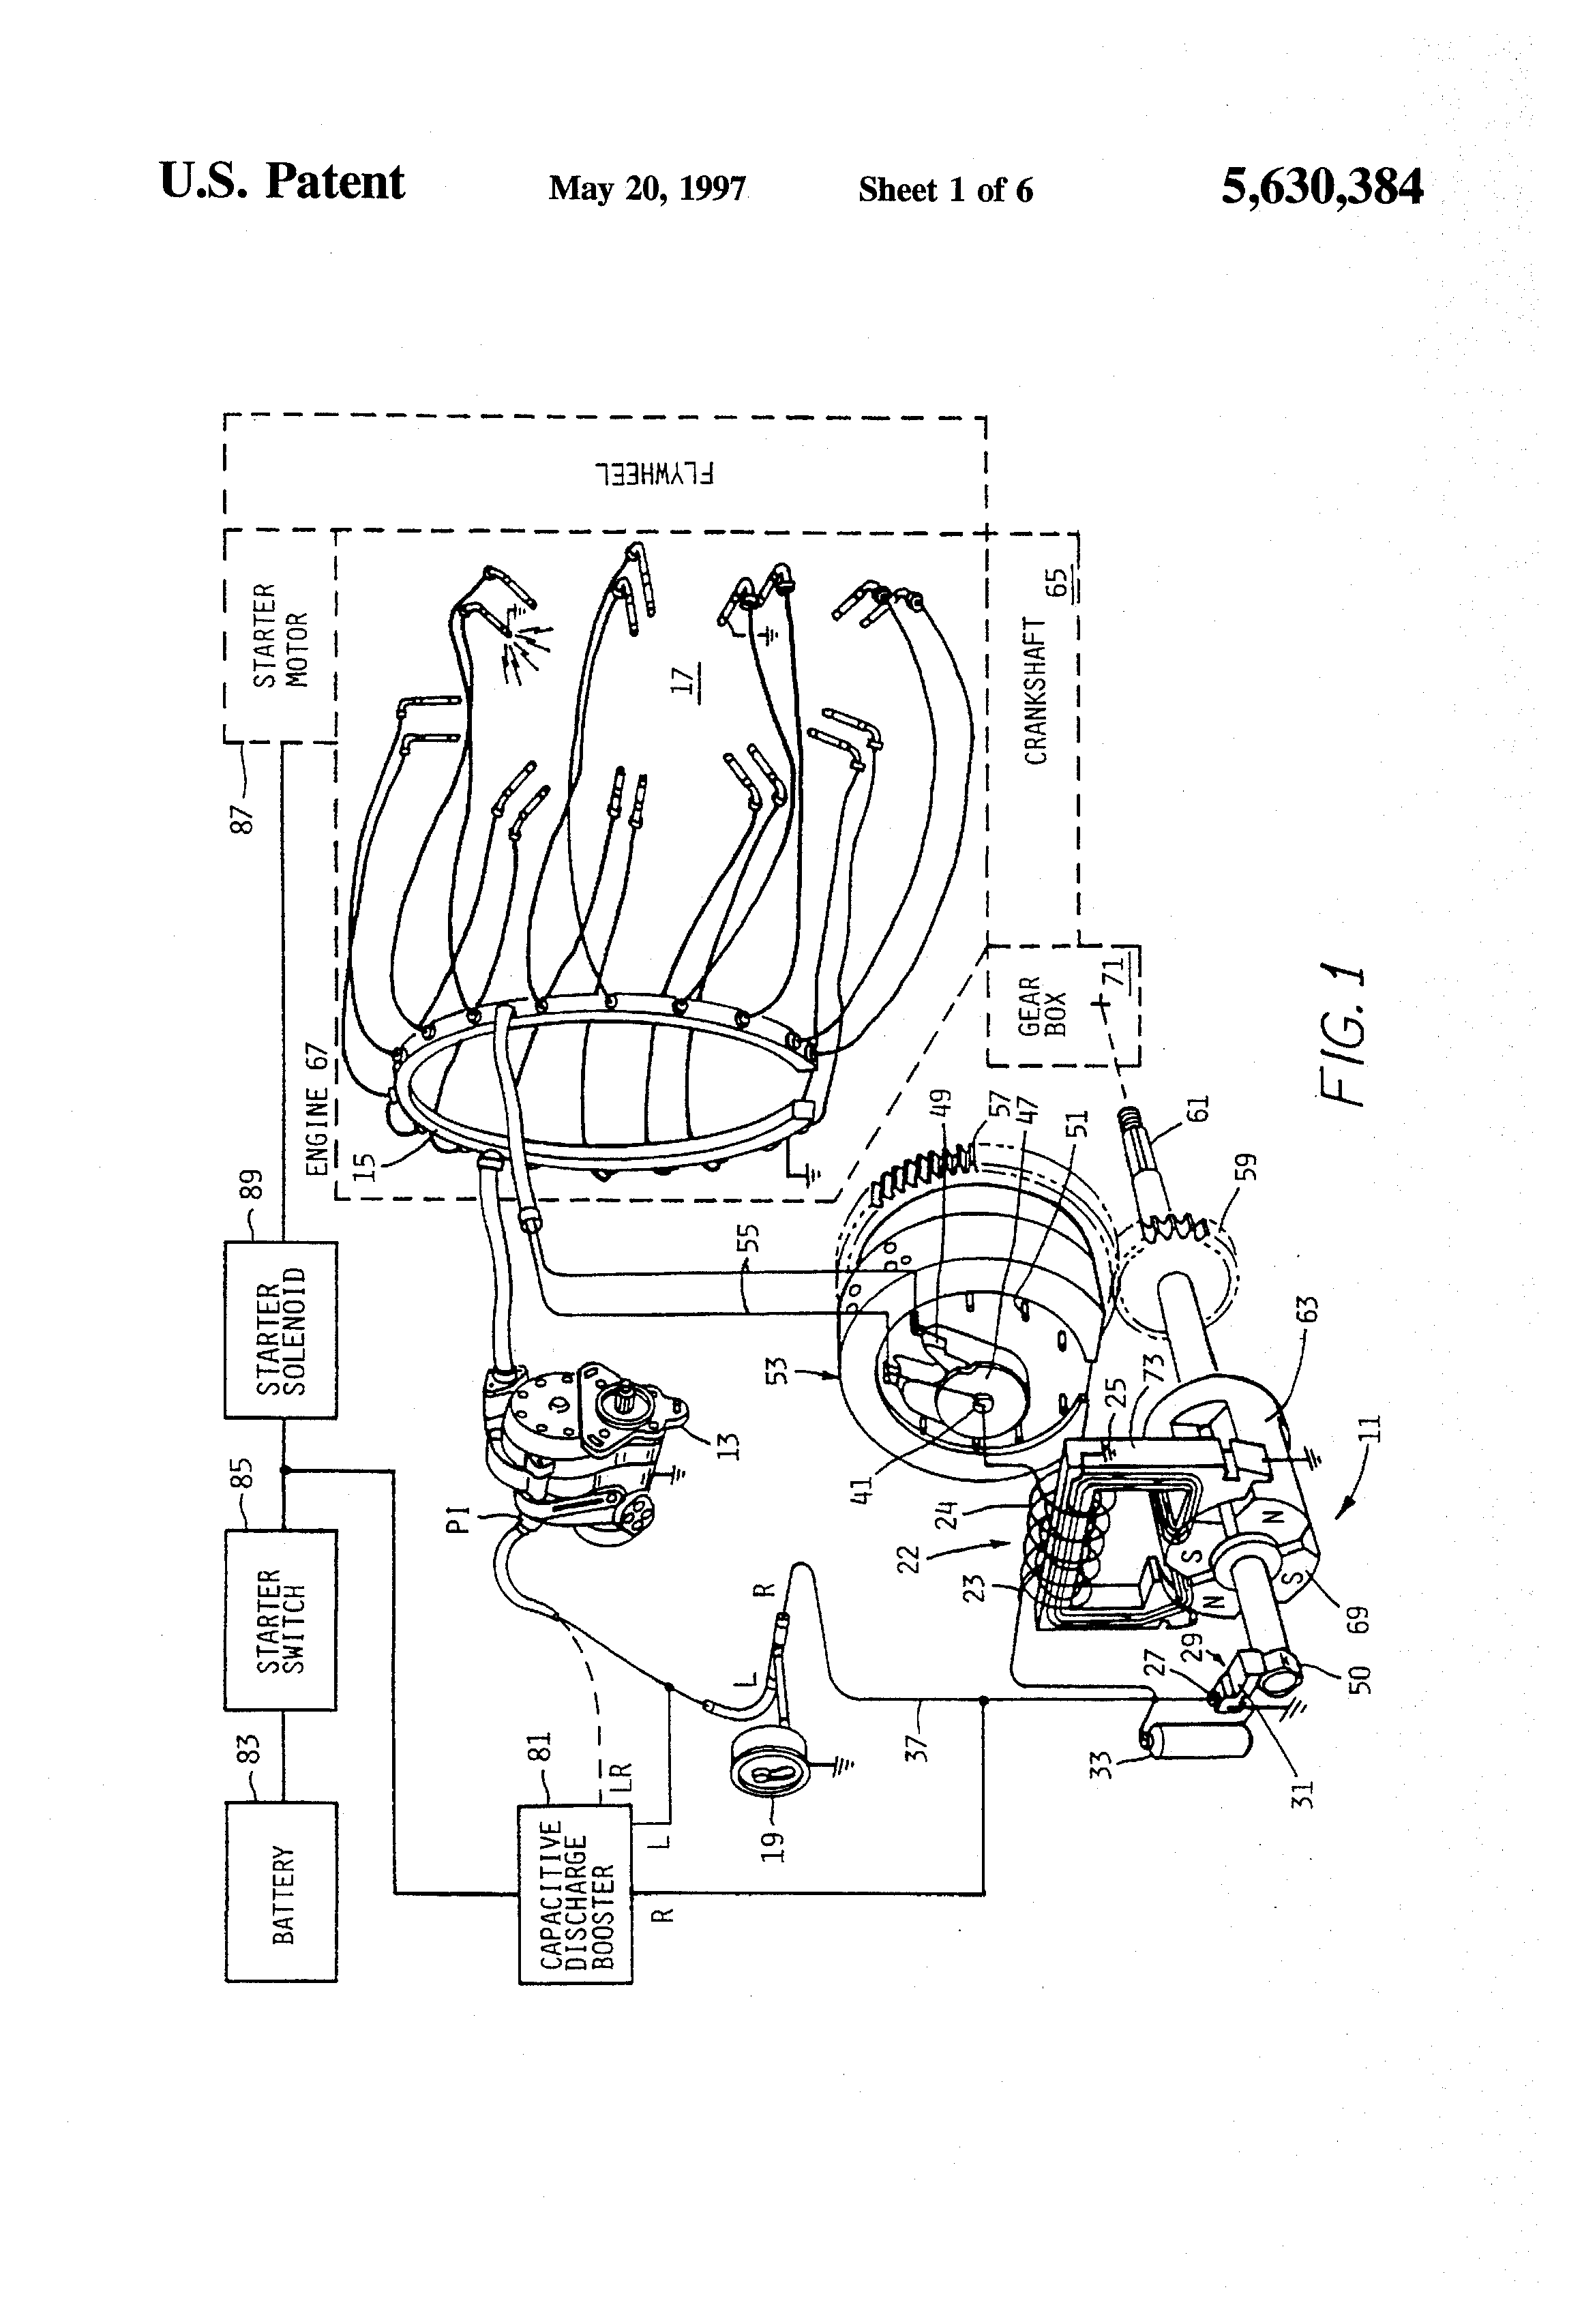 Bendix Mag o Harness also 1973 Chevy C3500 Wiring Diagram also Nissan Patrol 60 Series Repair And Service Manual In Pdf File Format in addition 2001 Buick Lesabre Wiring Diagram furthermore Ford 8n Distributor Wiring. on wiring harness overhaul